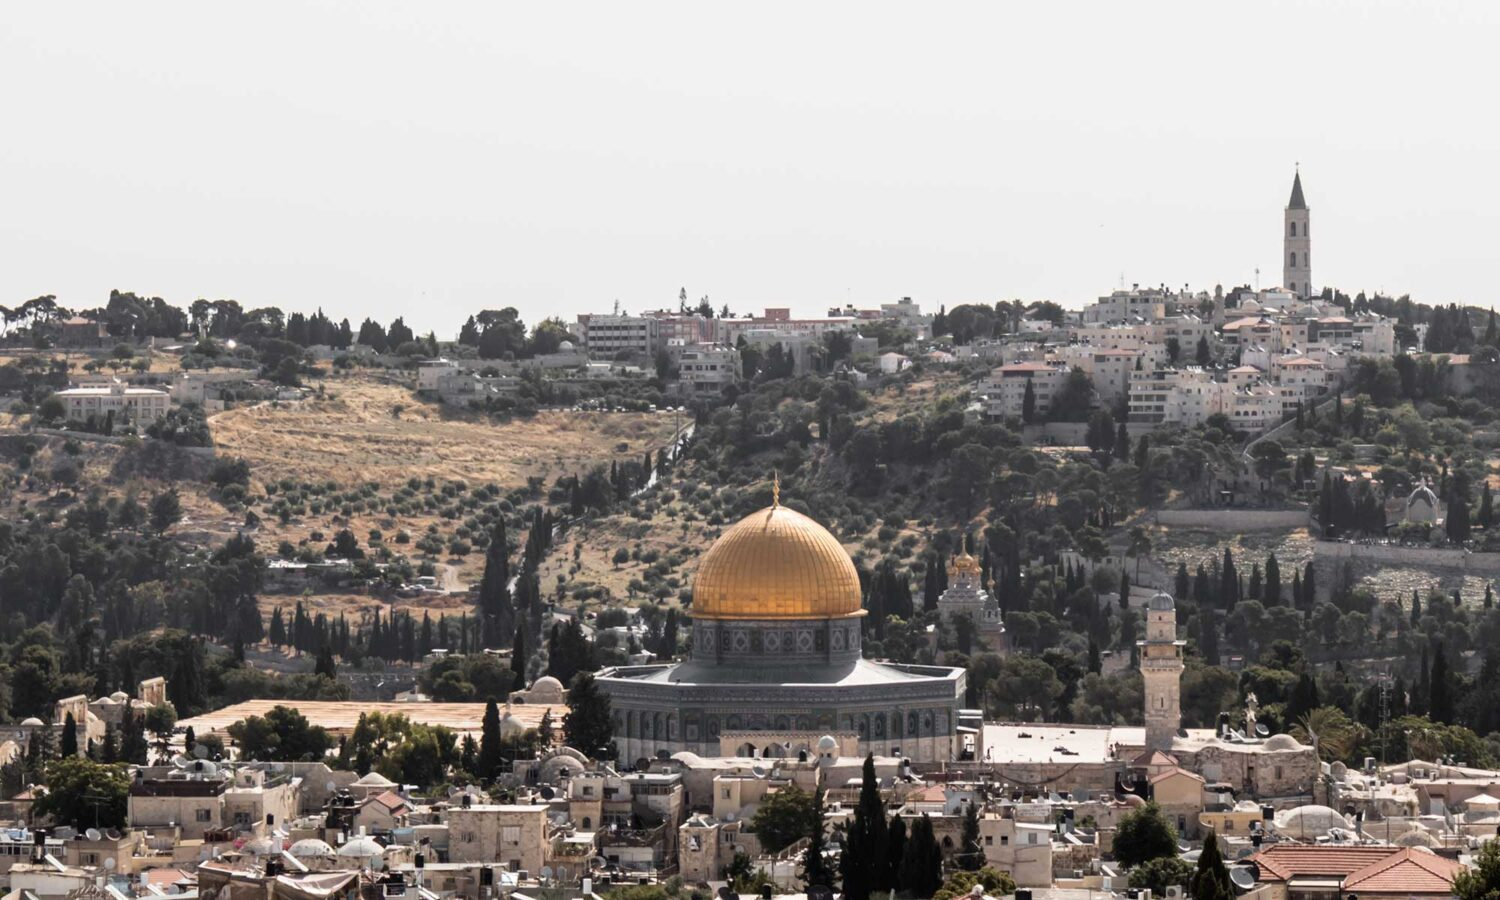 View of the Al Aqsa Mosque in Jerusalem